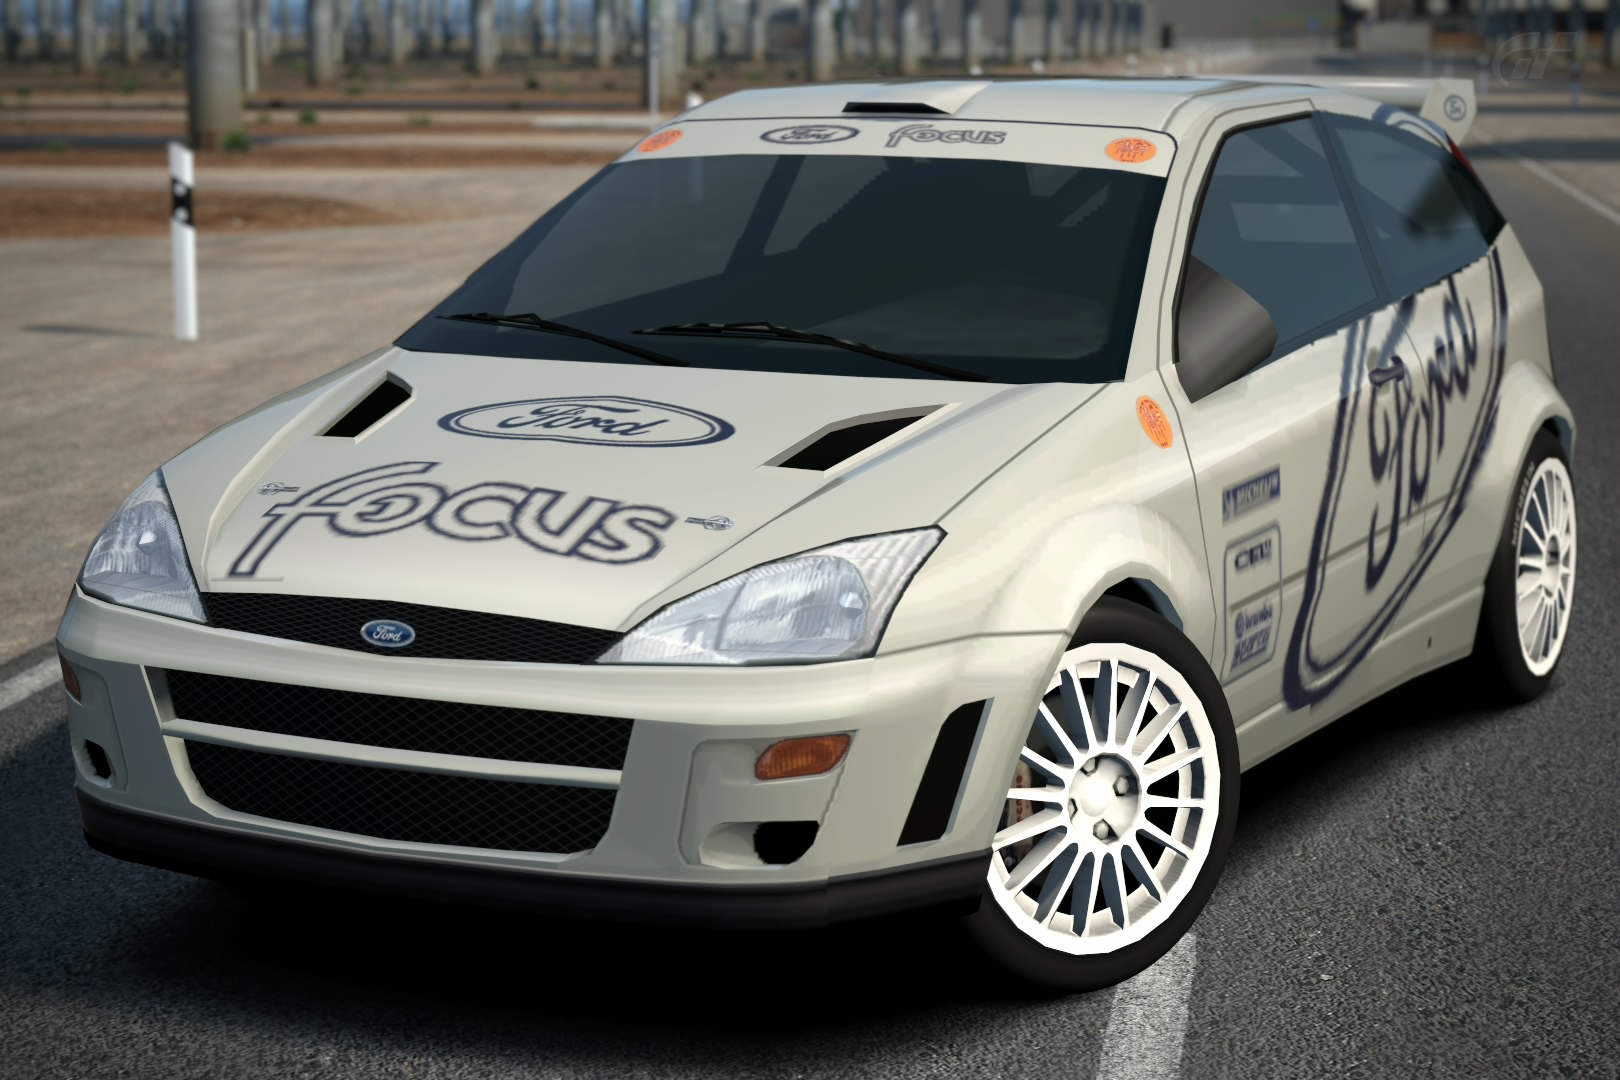 Ford Focus Rally Car '99